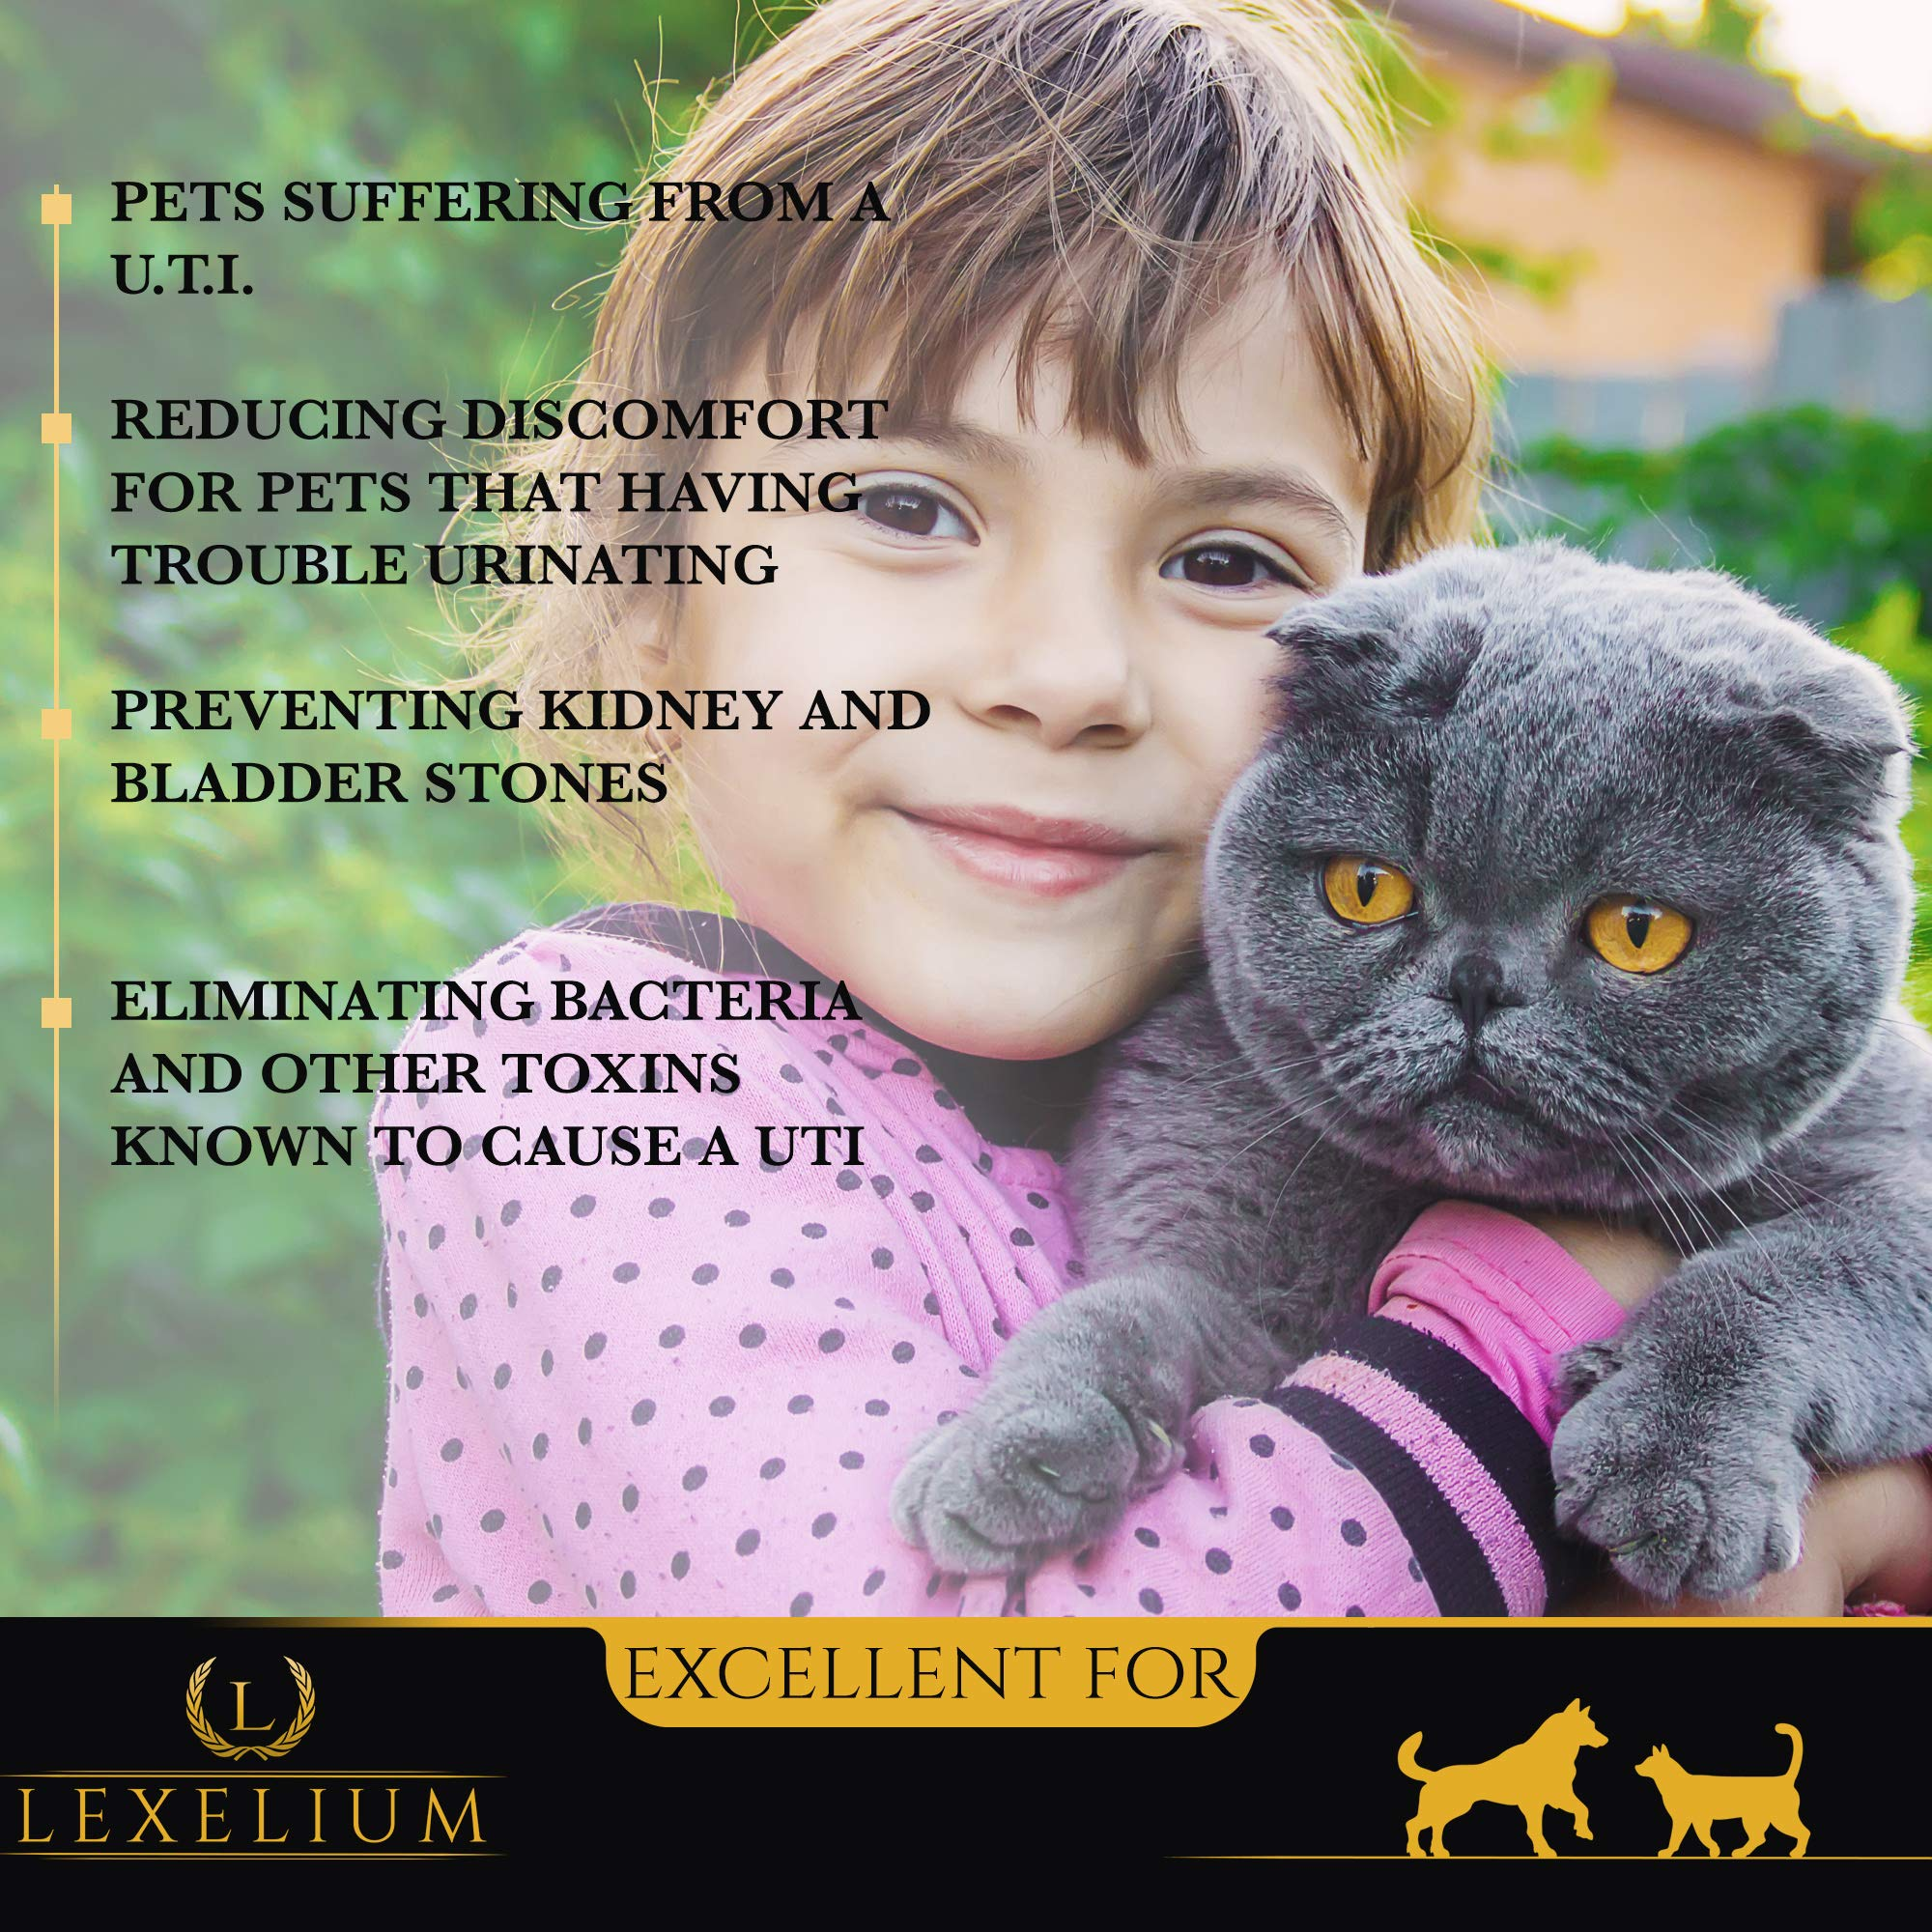 Organic Urinary Tract Infection (UTI) Support for Dogs and Cats | Fortified with Cranberry, D Mannose, and Curcumin | Strengthens Kidney & Bladder Function | Prevents Kidney/Bladder Stones | 200 G by Lexelium (Image #4)